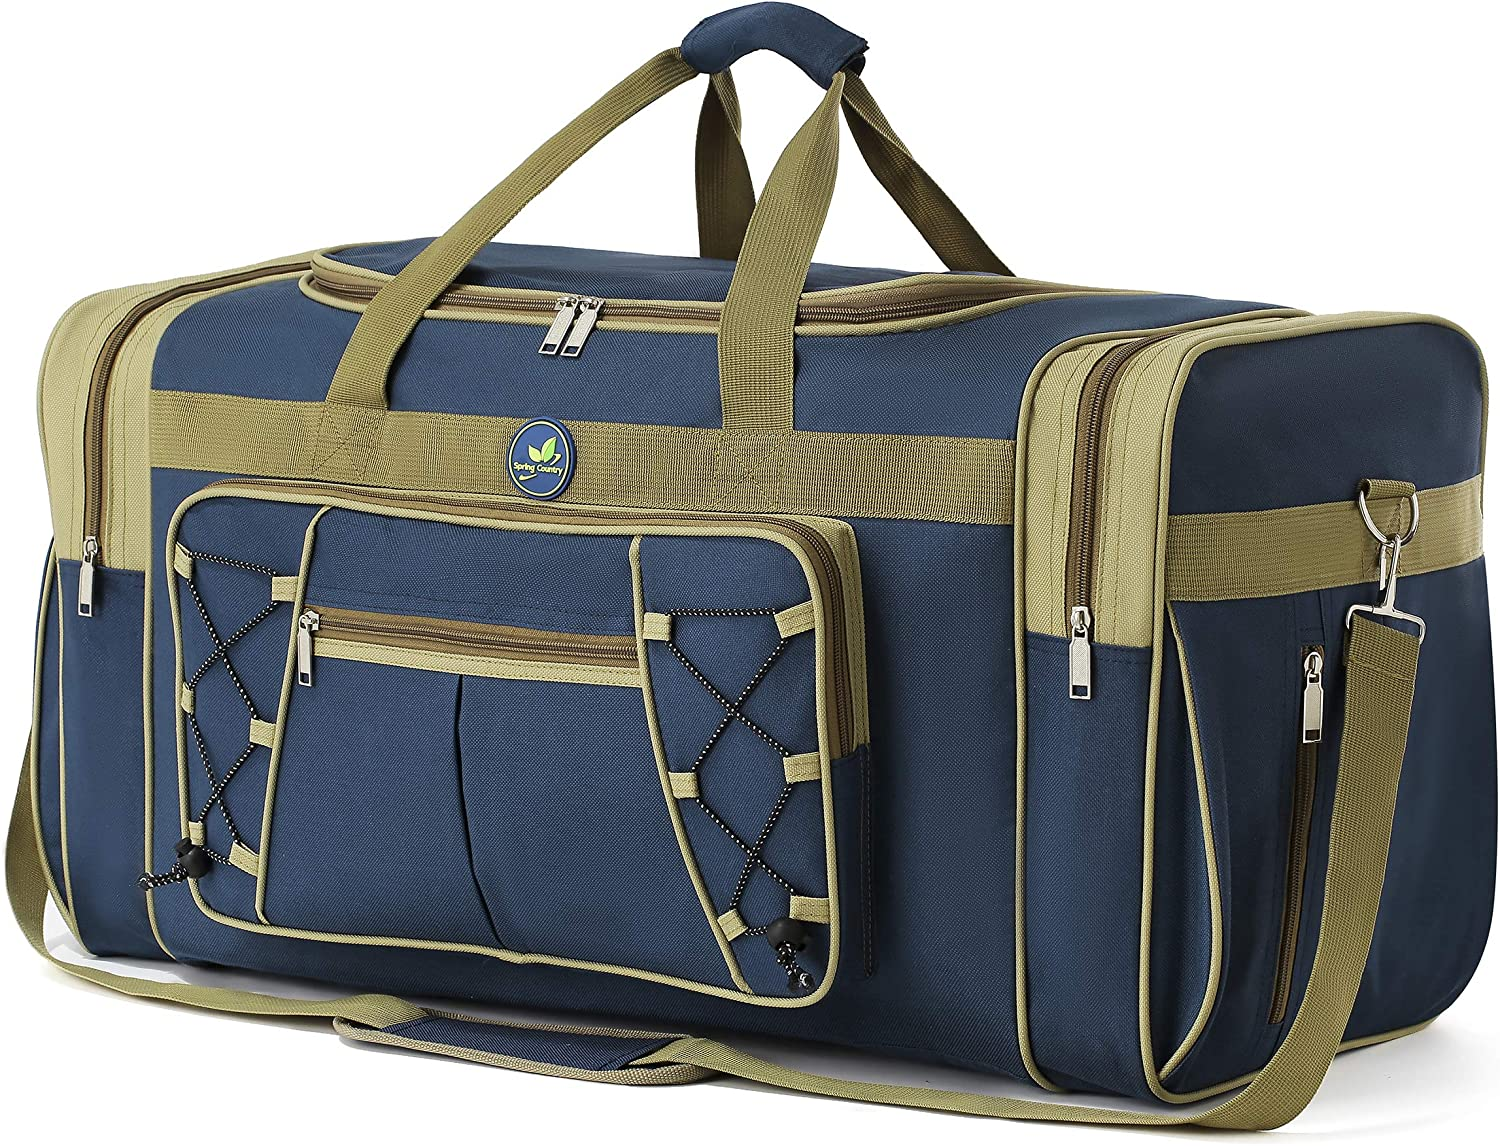 Travel Duffle Bags for Men Weekender Over Night Carry On BagLightweight Extra Large Oxford Duffel Gym Sturdy LuggageWater-prooffor Men & Women 26